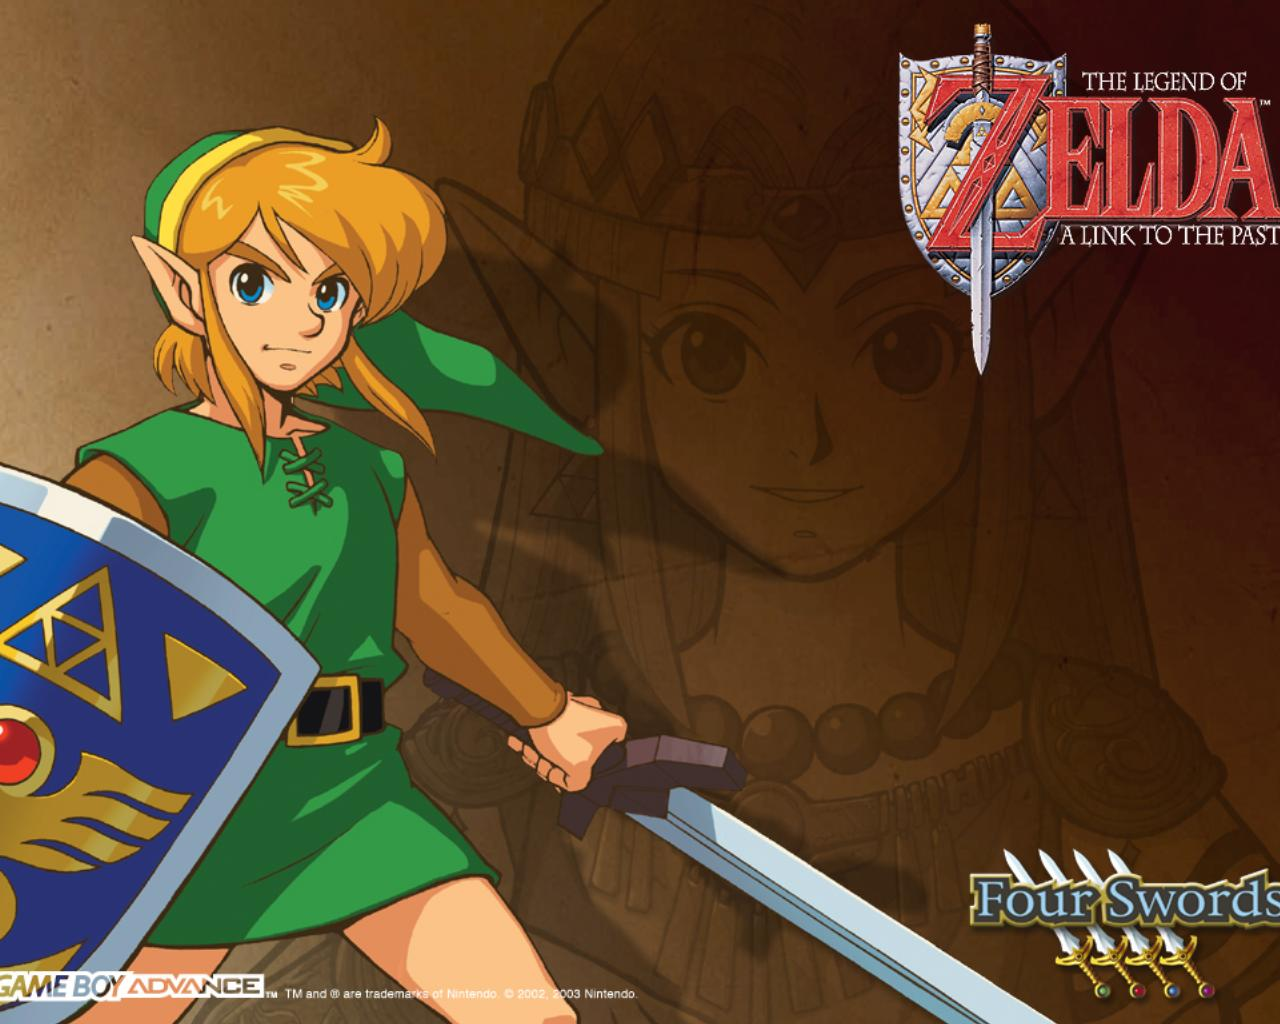 77 Link To The Past Wallpaper On Wallpapersafari